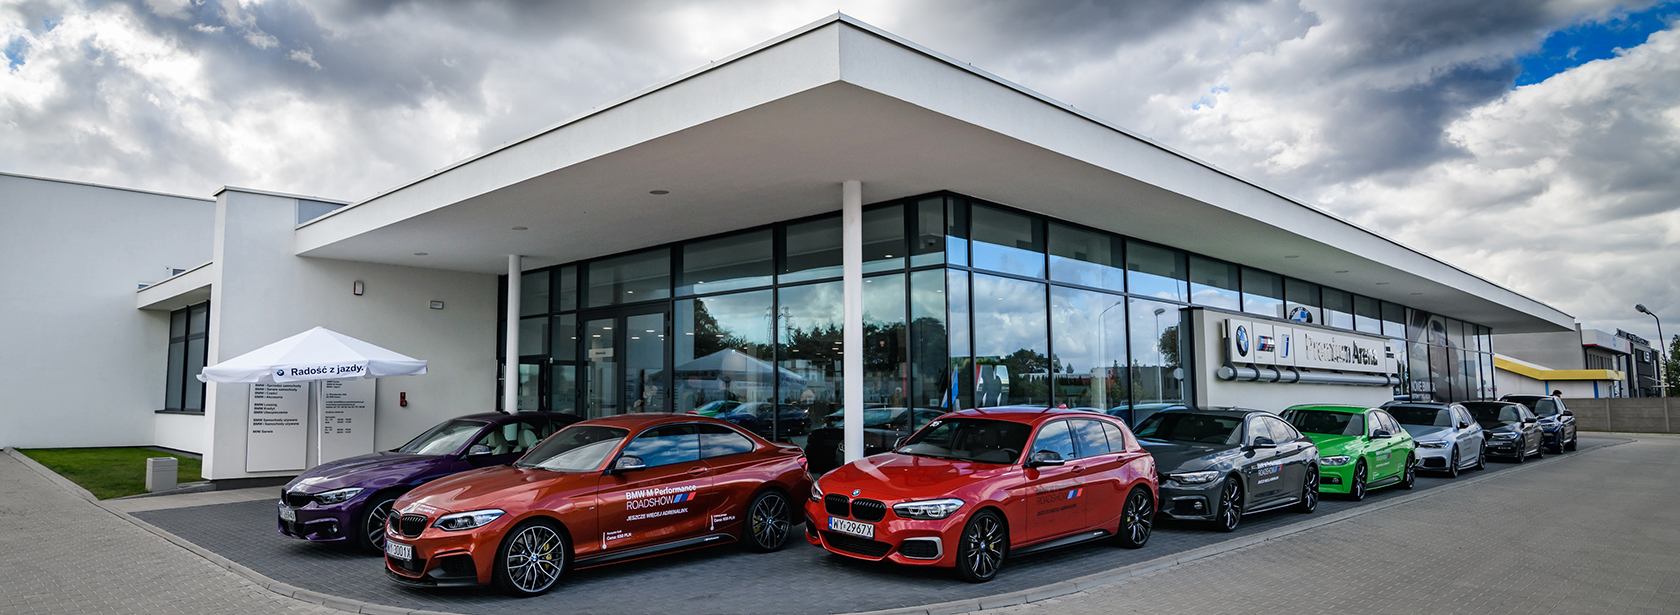 Salon Dealer BMW Premium Arena Kalisz.